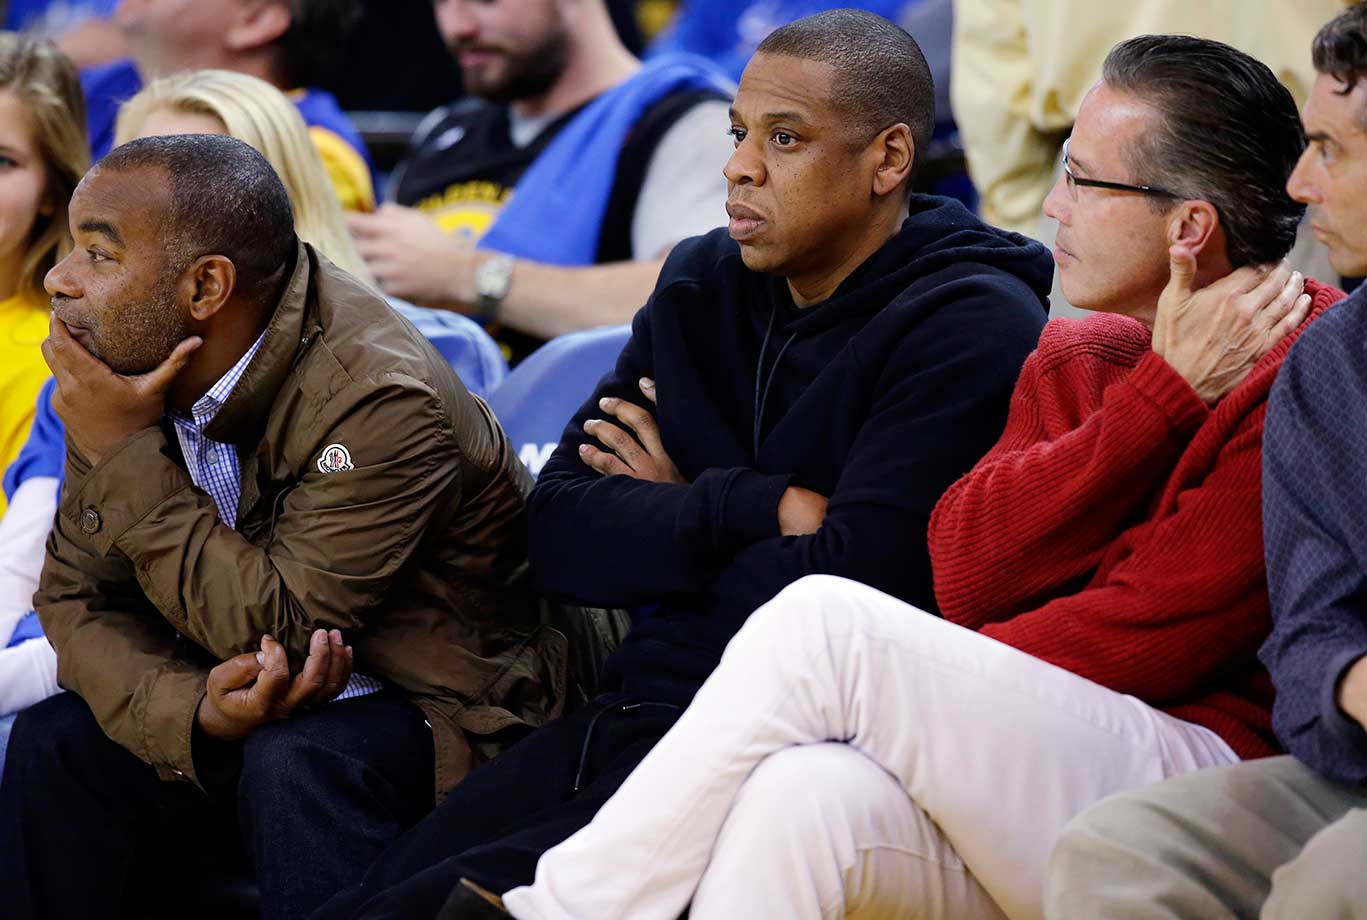 Recording artist Jay-Z watches the Golden State Warriors-San Antonio Spurs game in Oakland, Calif.